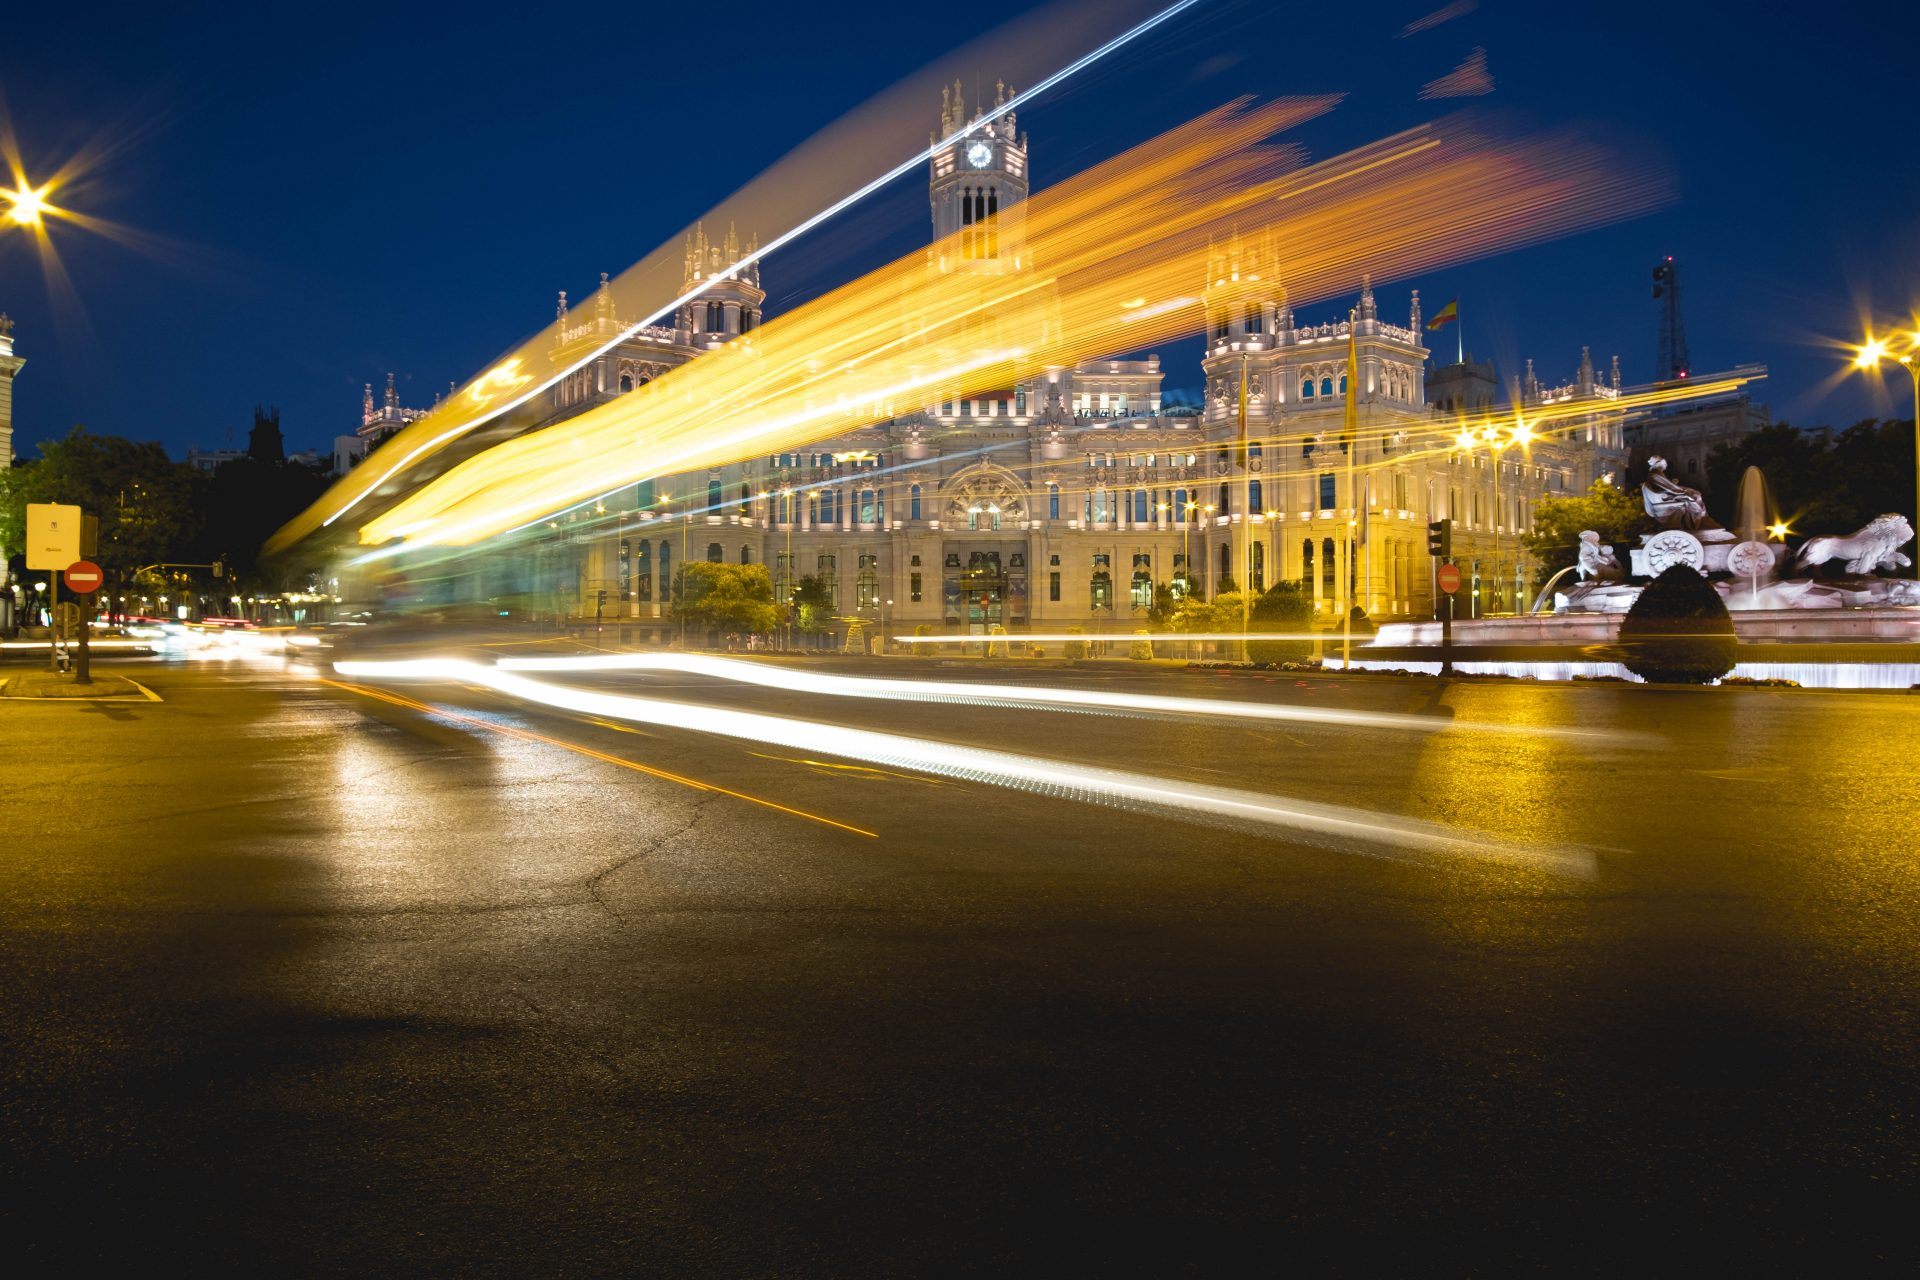 Plaza de Cibeles Madrid Long exposure shot photo by Jo Kassis